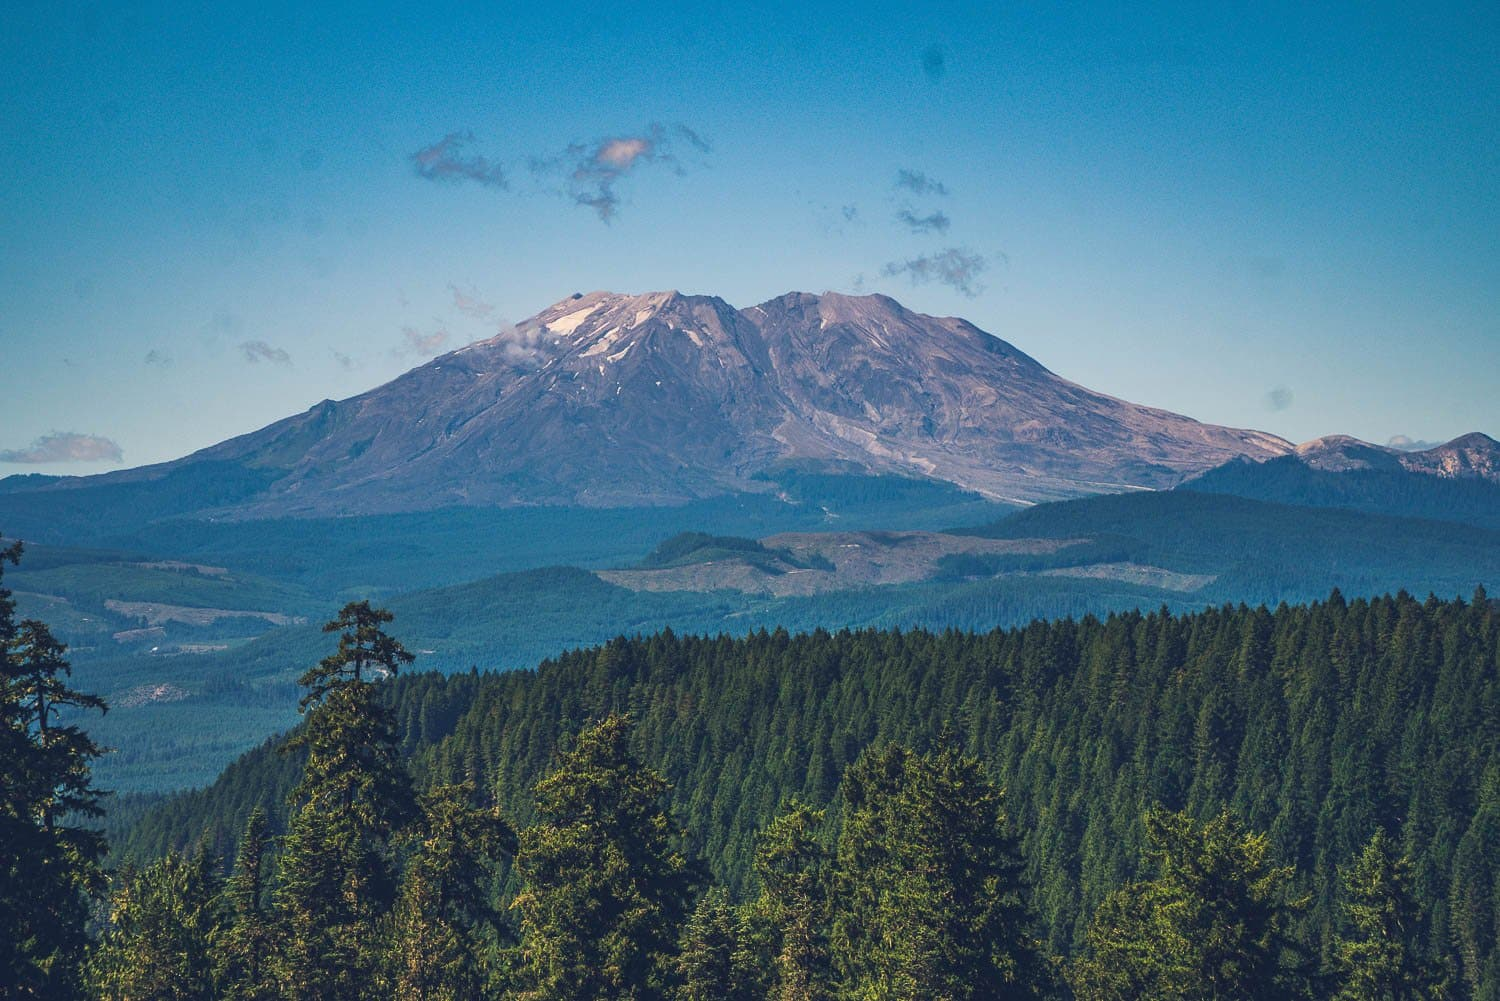 national parks guide: mount saint helens